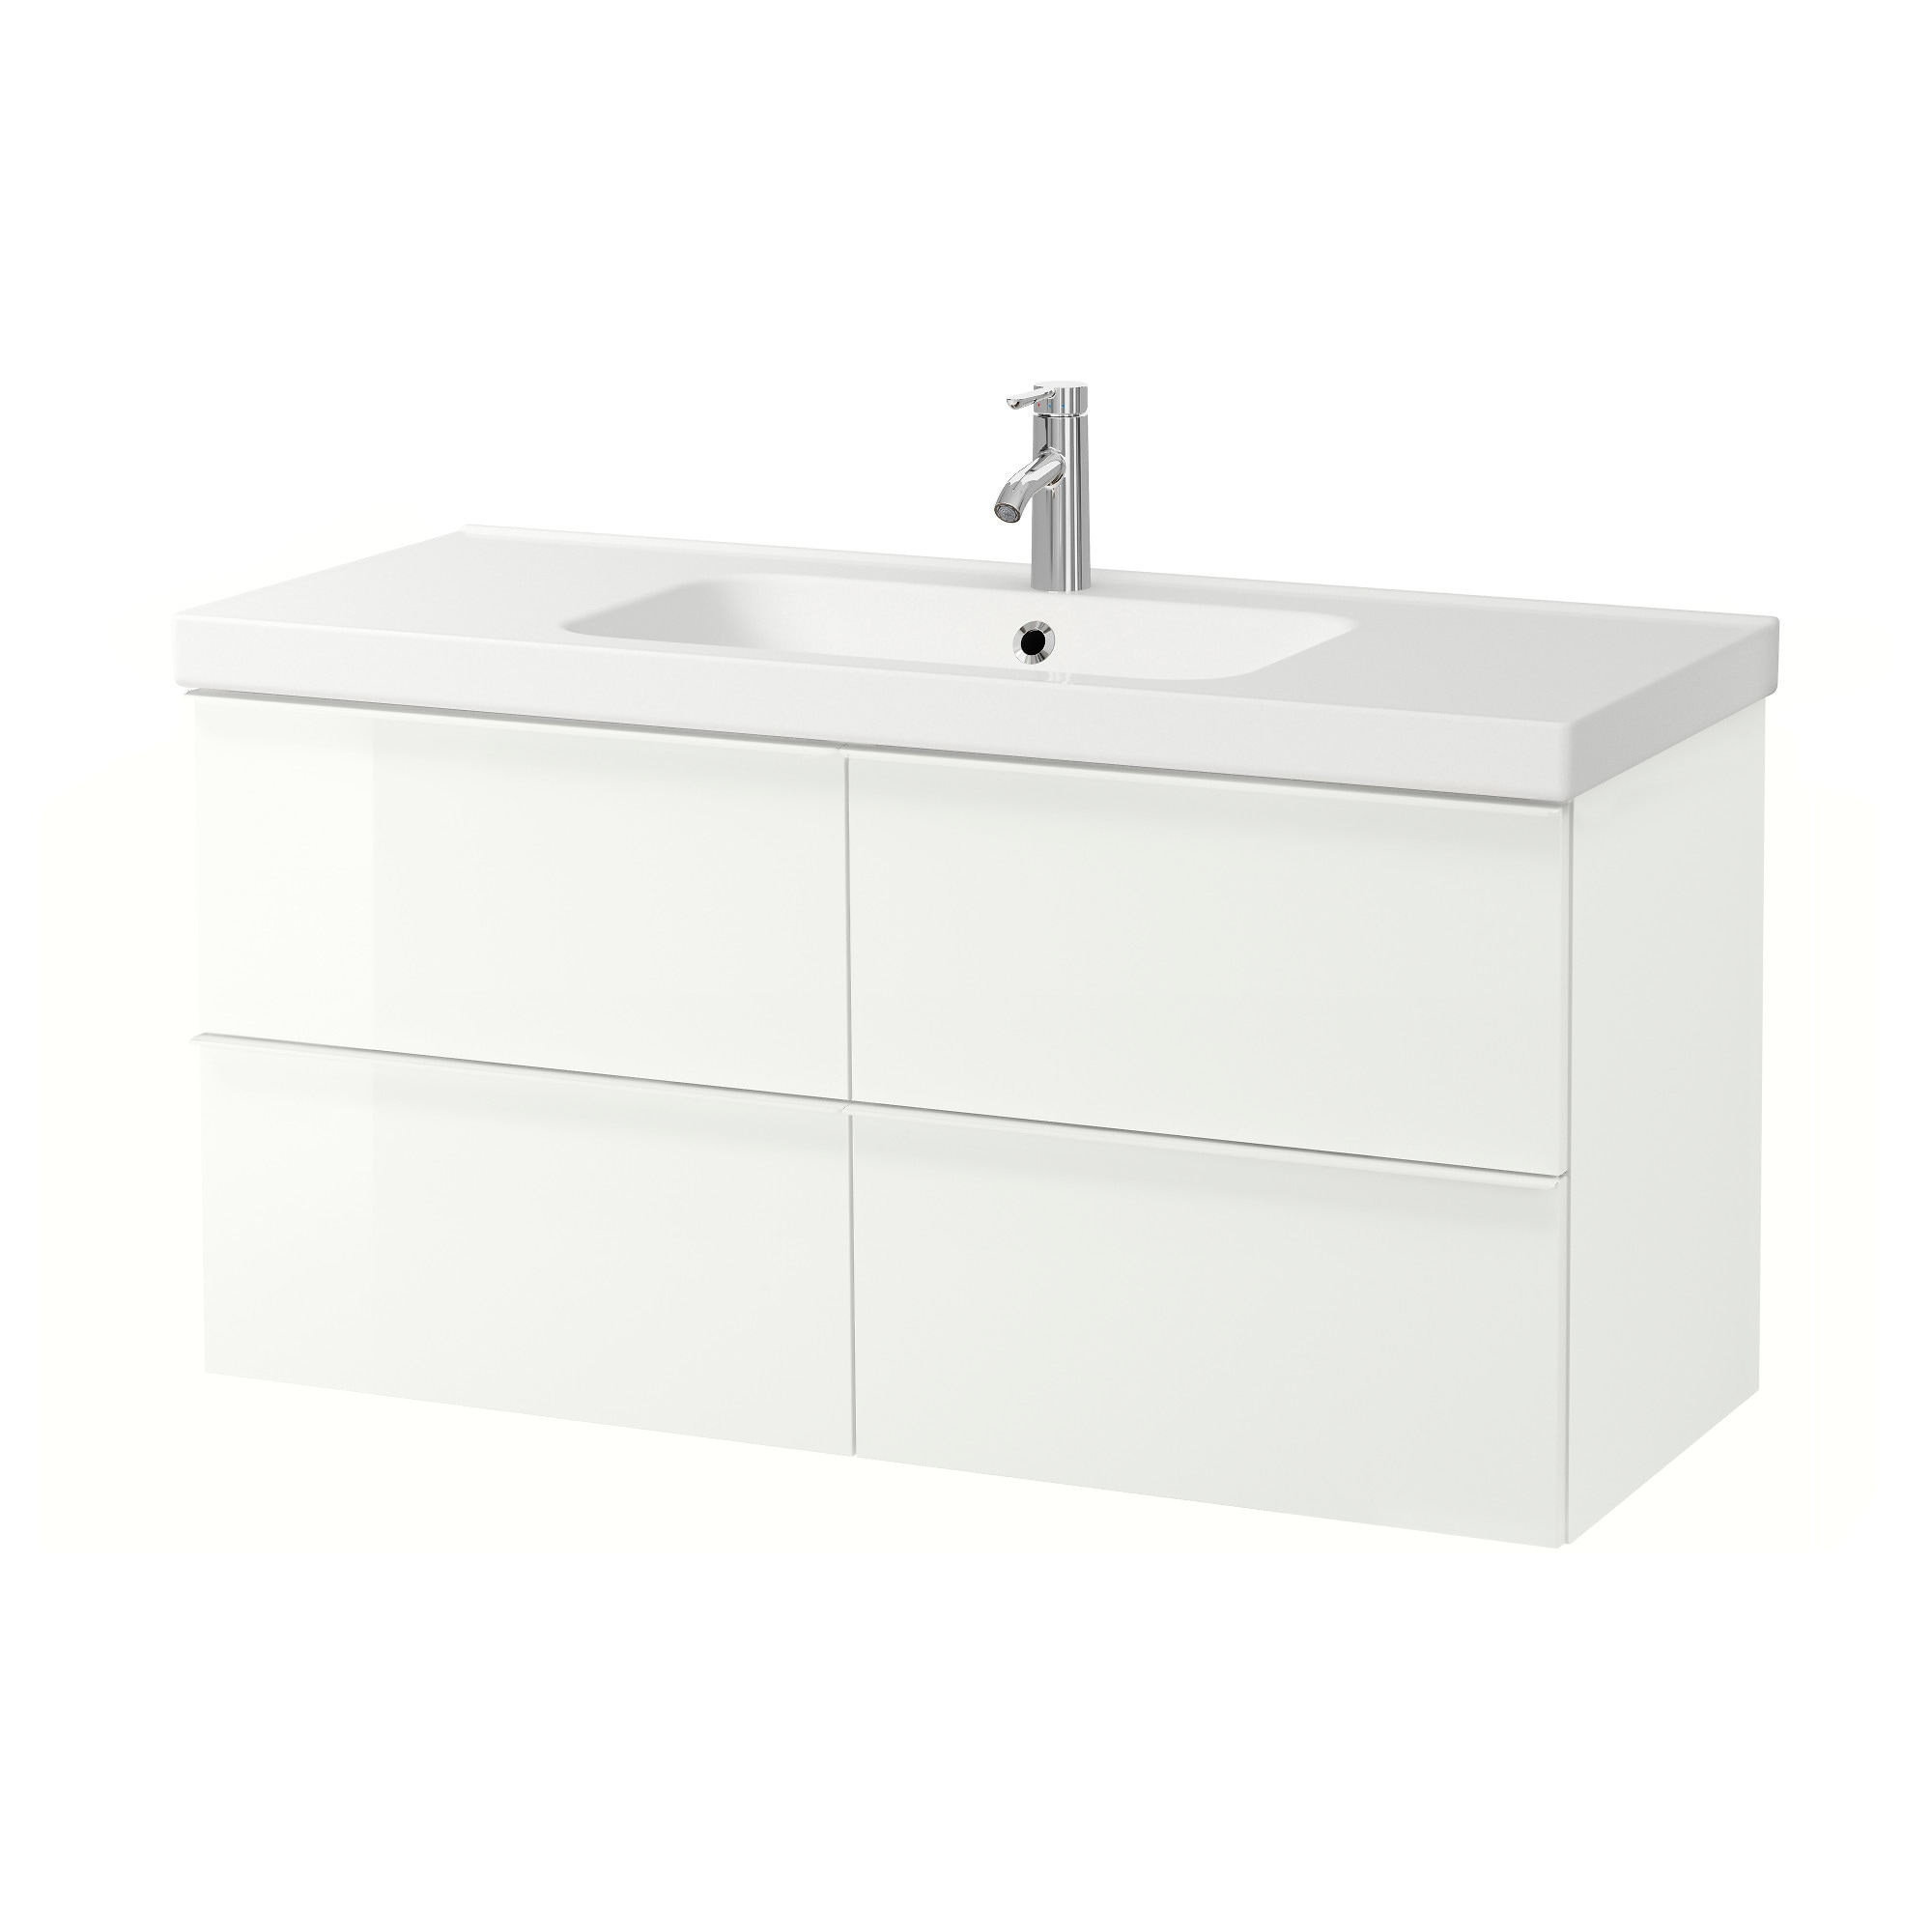 Bathroom Sinks With Cabinet godmorgon / odensvik sink cabinet with 4 drawers - high gloss gray